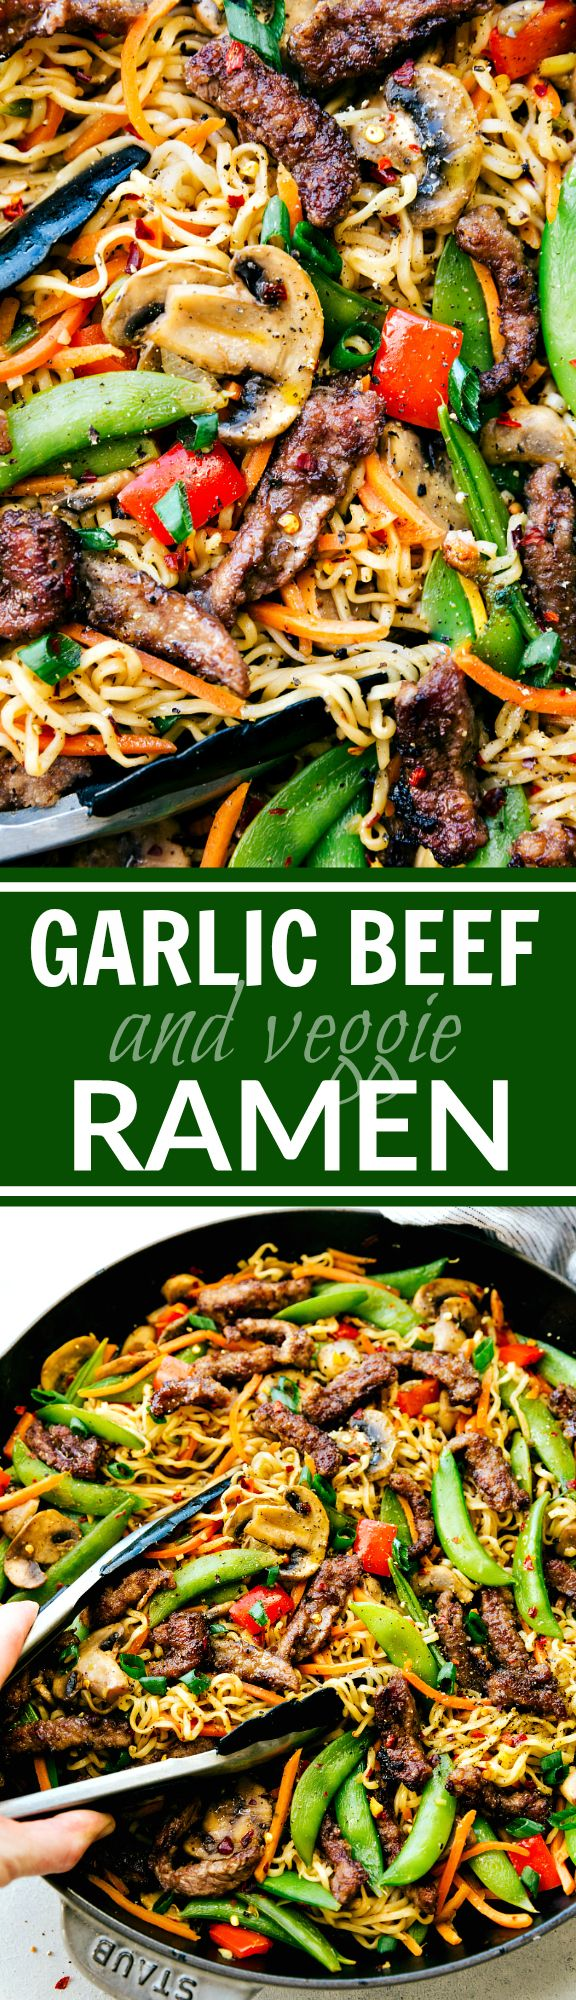 GarlicBeef and Veggie Ramen is an easy 30-minute dinner recipe that is so much better than take-out! via chelseasmessyapron.com